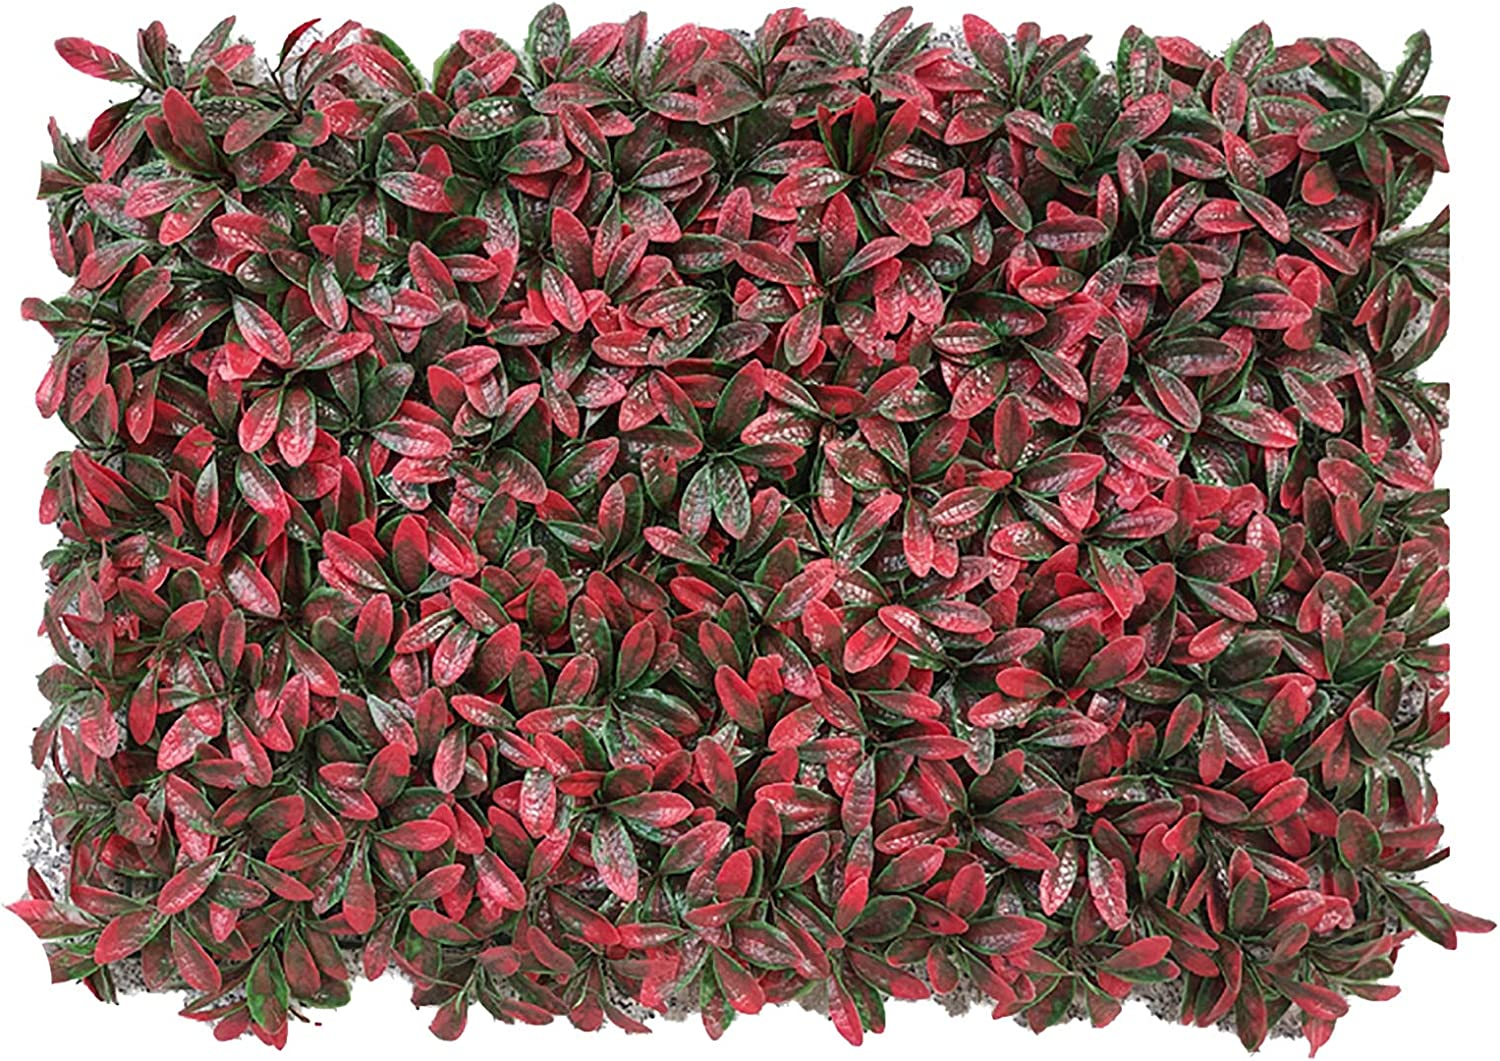 40X60CM Simulation Plant Wall Lawn Ranking All items in the store TOP19 F Background Green